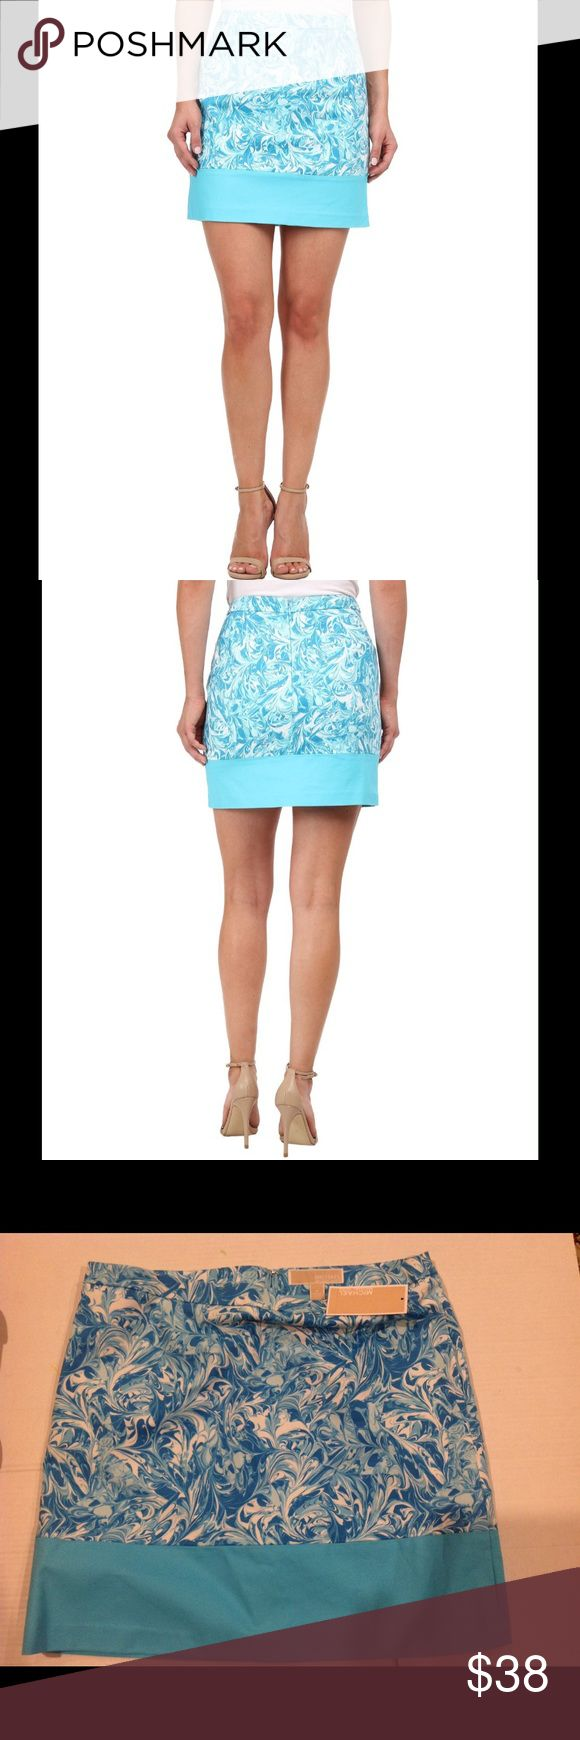 """WEEKEND OFFER 🆕 MICHAEL KORS TURQUOISE SKIRT. Michael Kors Mediterranean  turquoise print skirt. Fitted  waistband . Zip closure at back.Straight hemline with color block design. Lined. Machine wash cold.   Length approximately is 17"""" . Material - SHELL - 98% cotton 2 % elastane.   LINING - 97% polyester . 3 % spandex. Michael Kors Skirts Mini"""